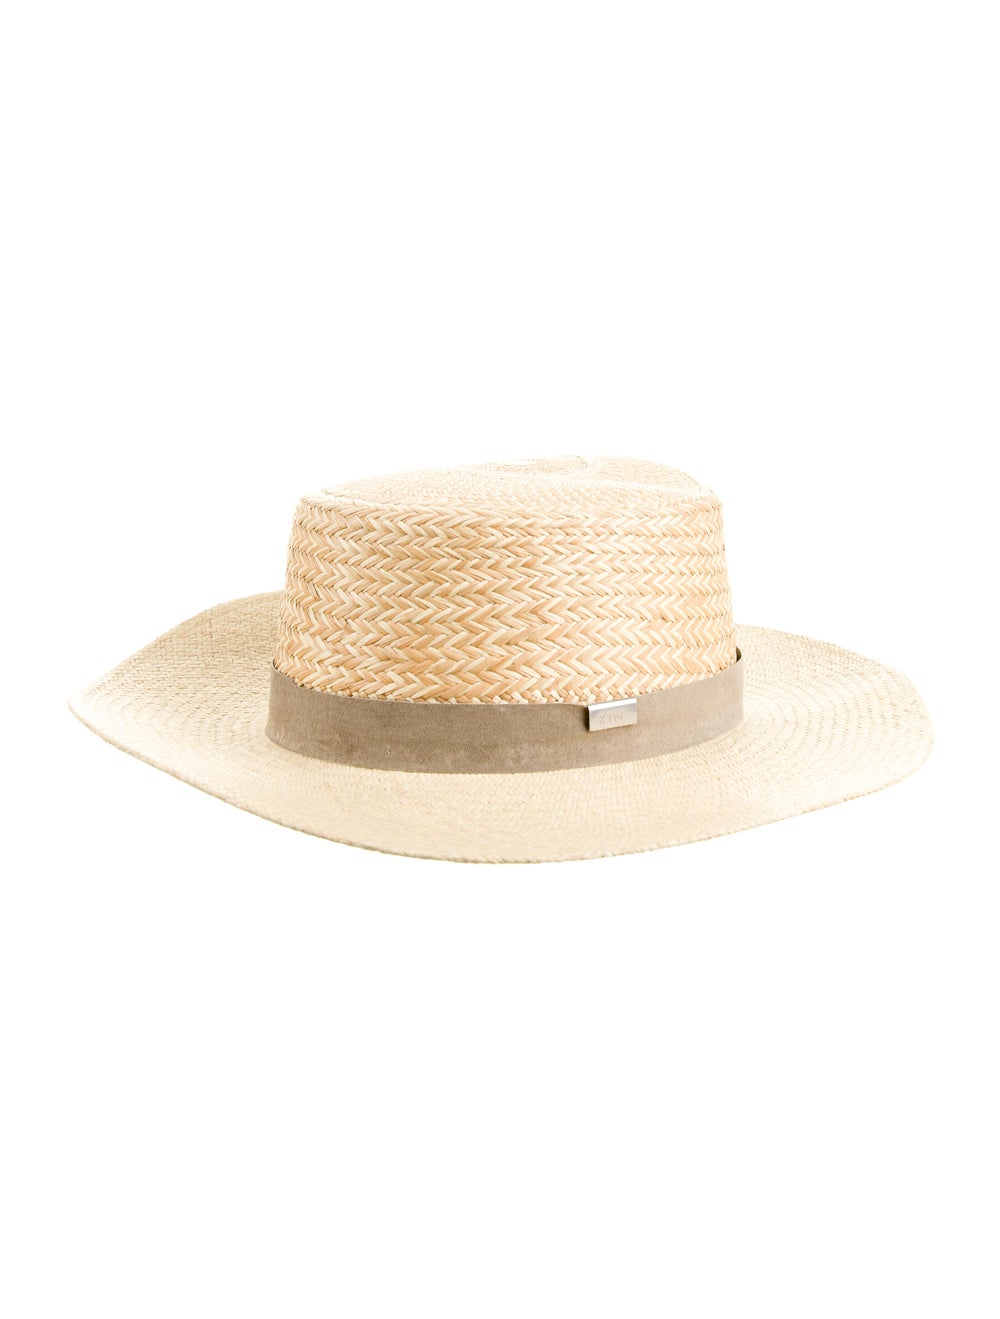 Kin The Label Straw Summer Hat - image 1